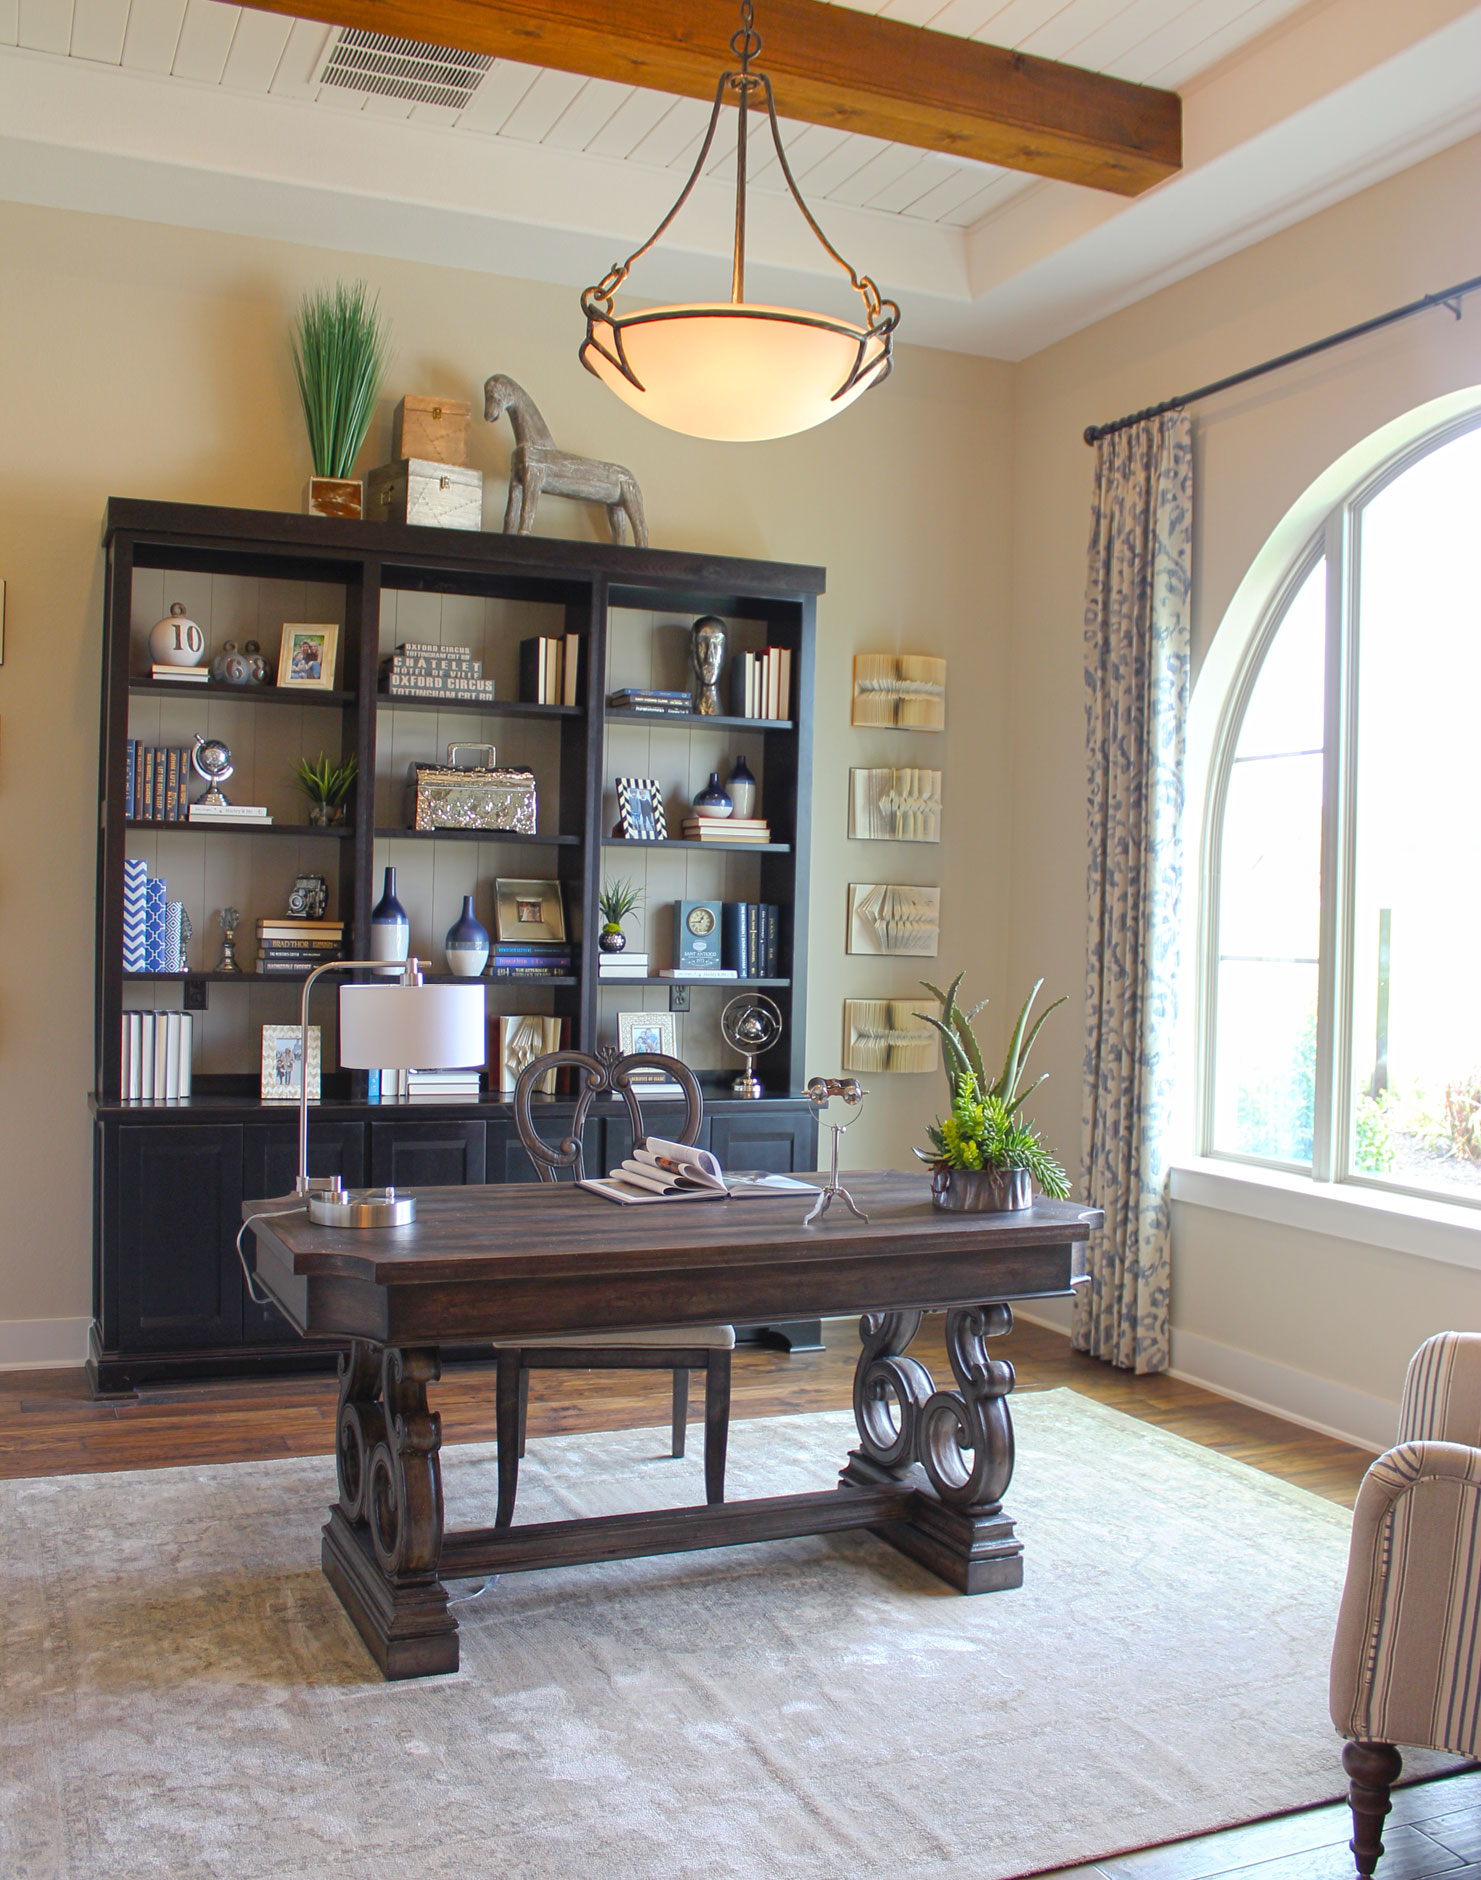 Burrows Cabinets Study with lower cabinets and open upper shelves in Beech Rye with Briscoe door design